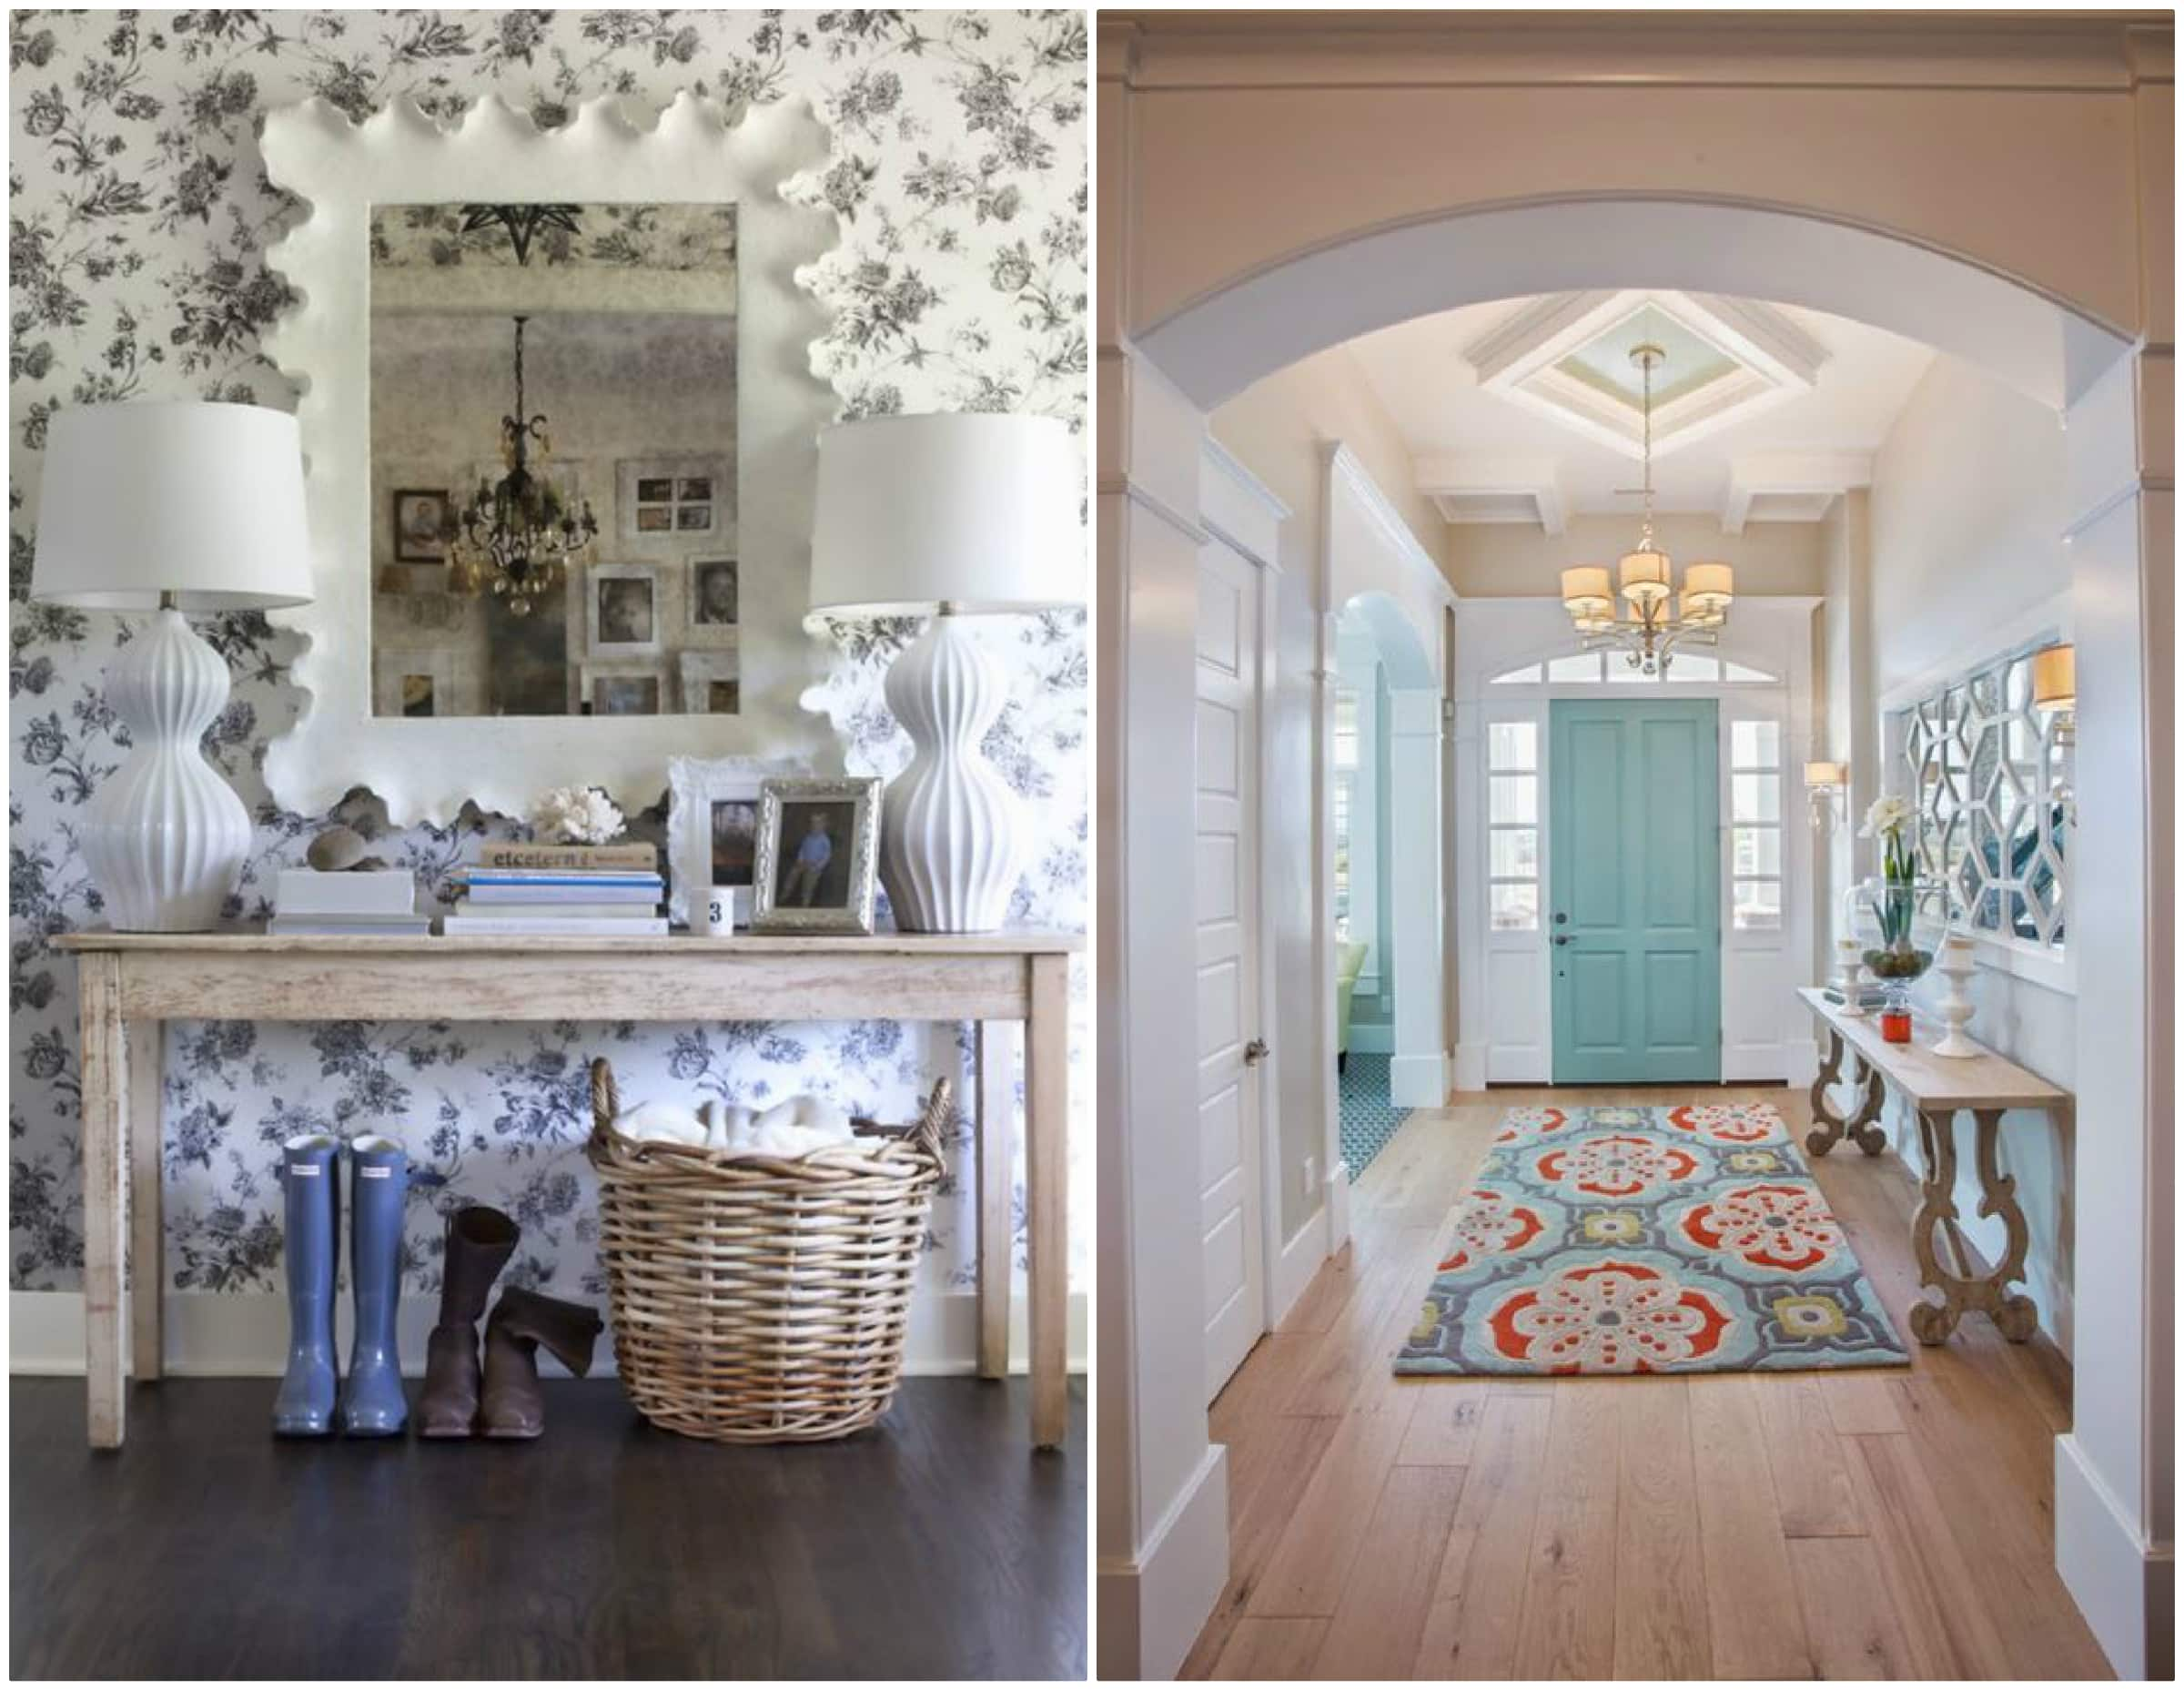 10 Gorgeous Ideas For Your Home With Mega